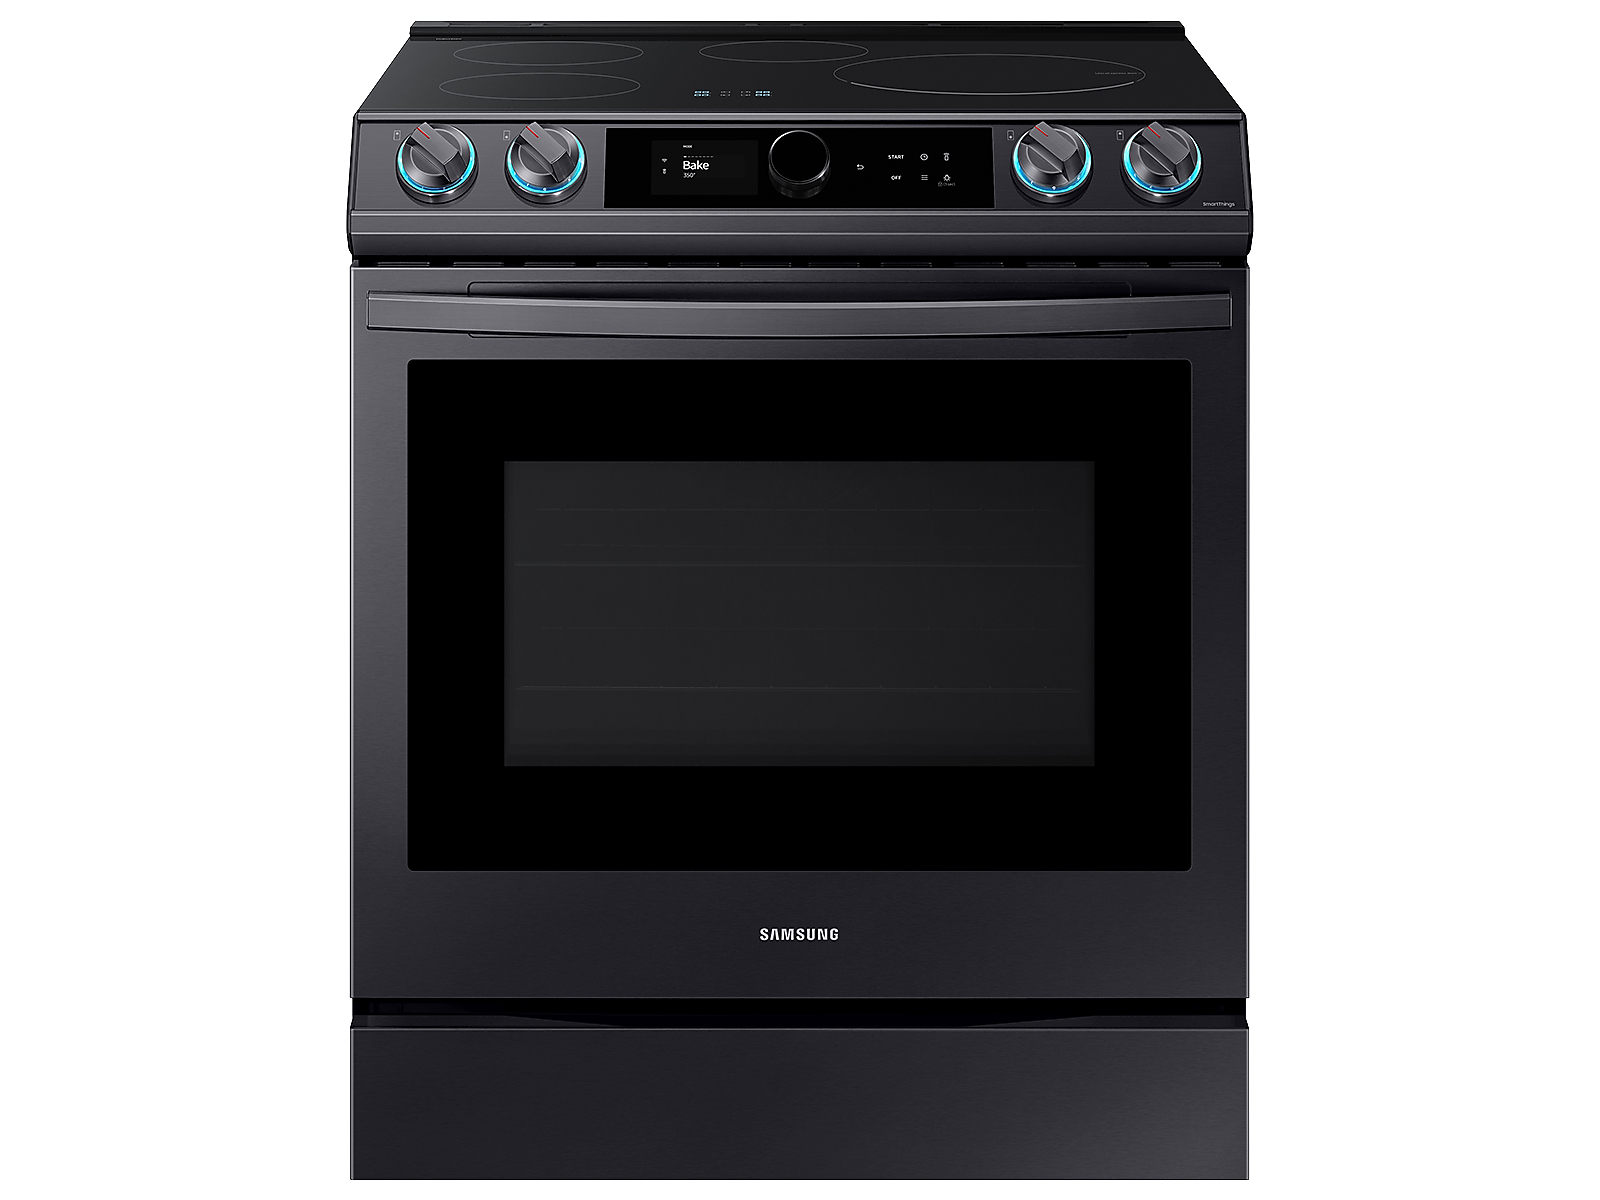 Samsung 6.3 cu. ft. Smart Slide-induction Range with Smart Dial & Air Fry in Black Stainless Steel(NE63T8911SG/AA)